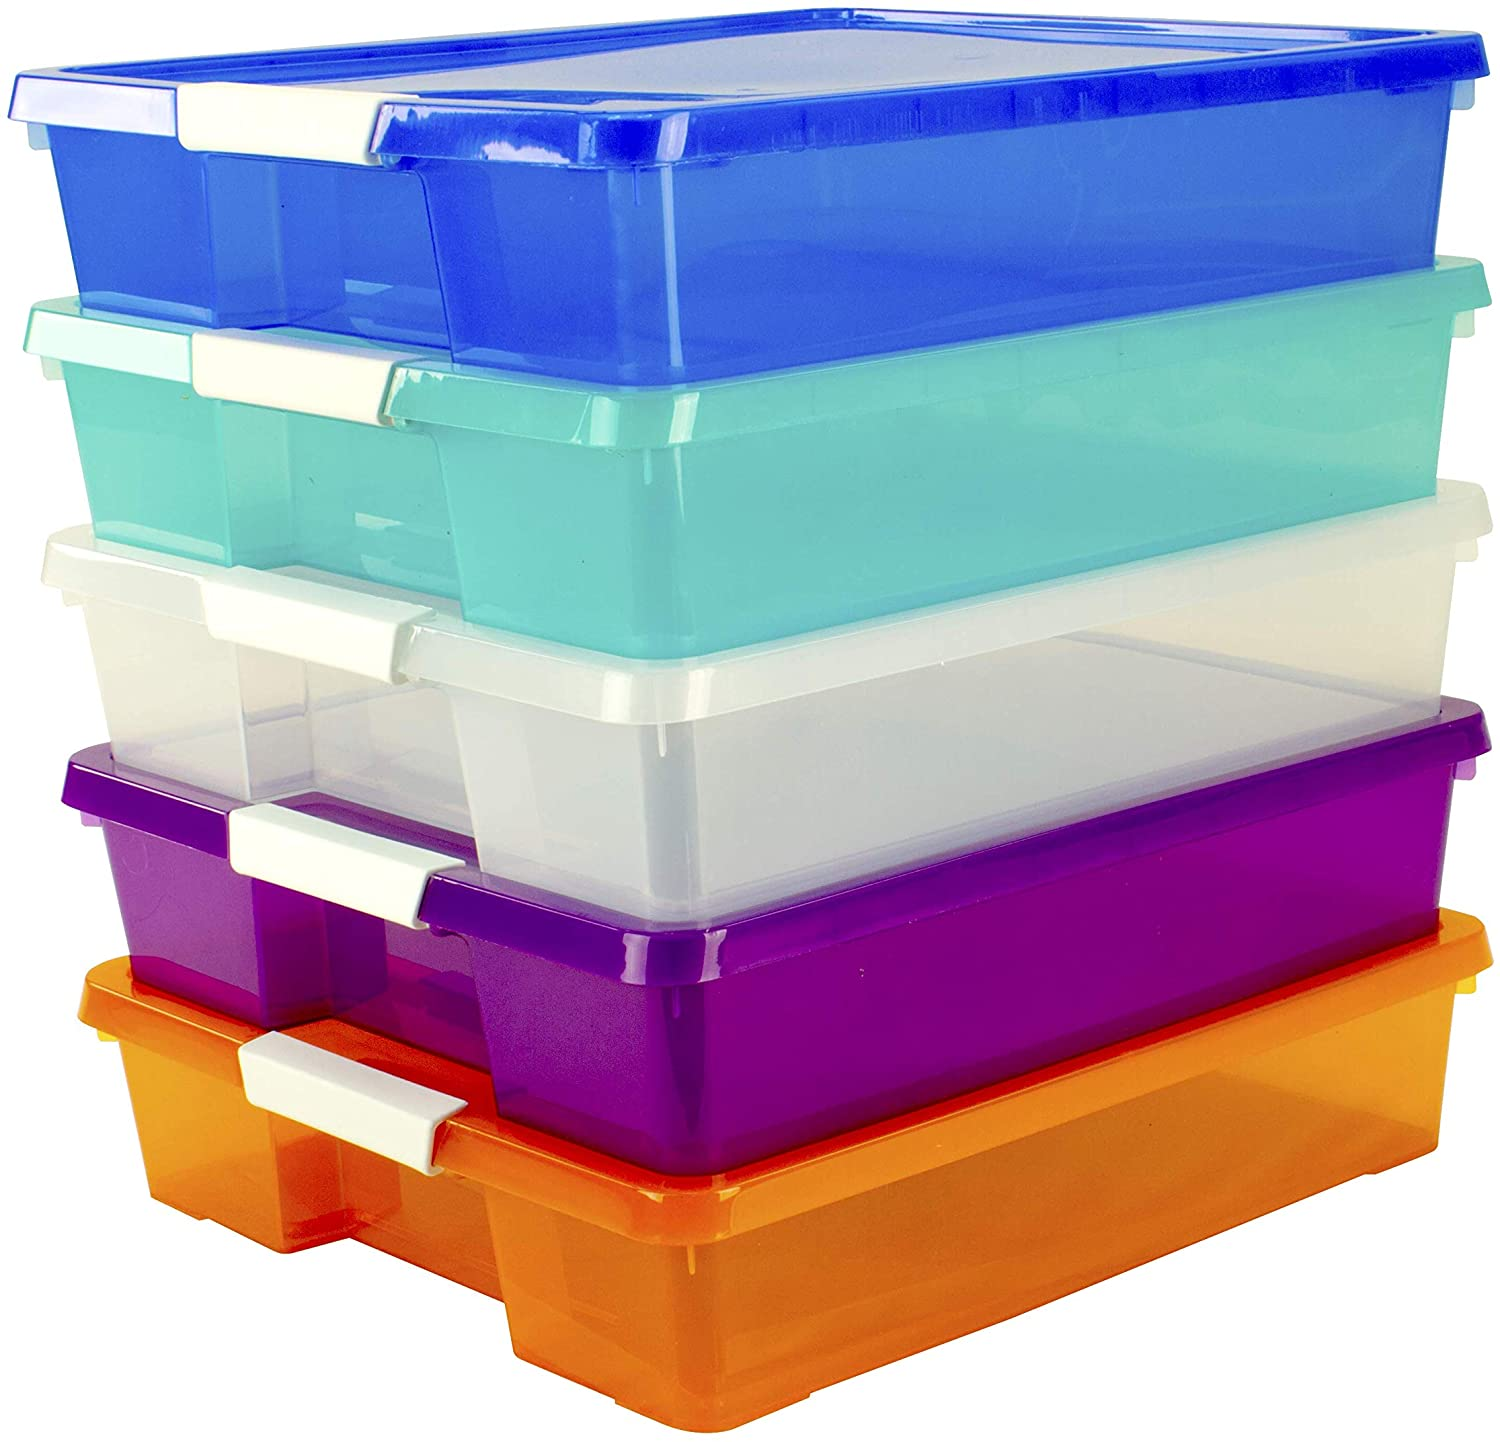 Rainbow-colored, plastic storage containers